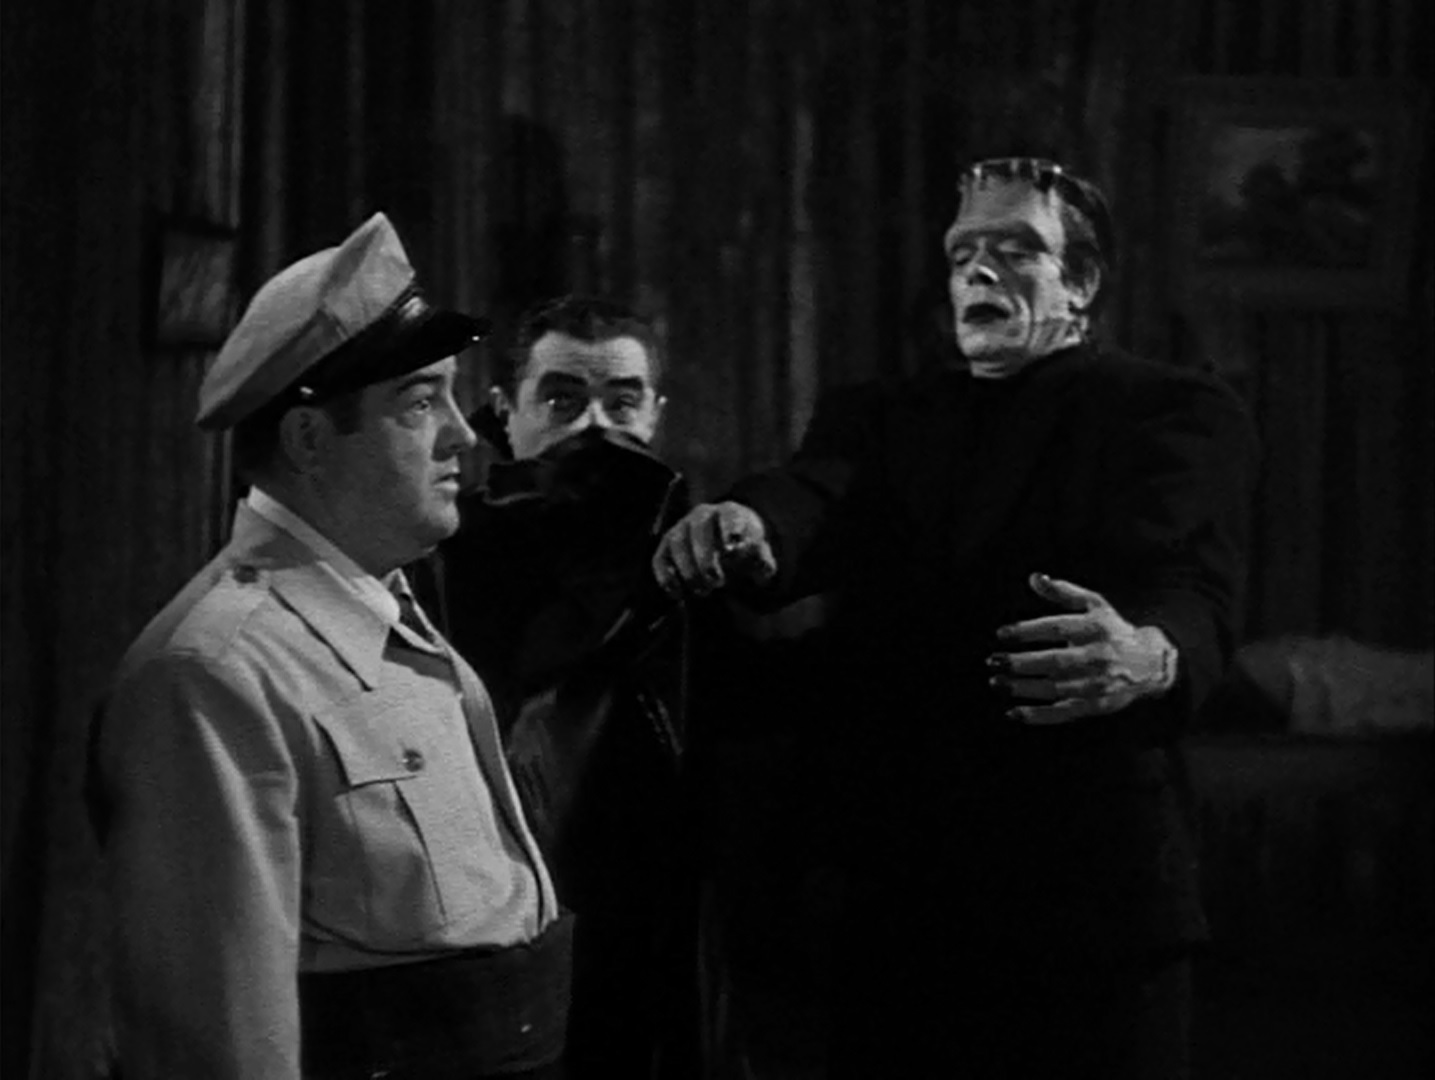 abbott and costello meet frankenstein bloopers from twilight